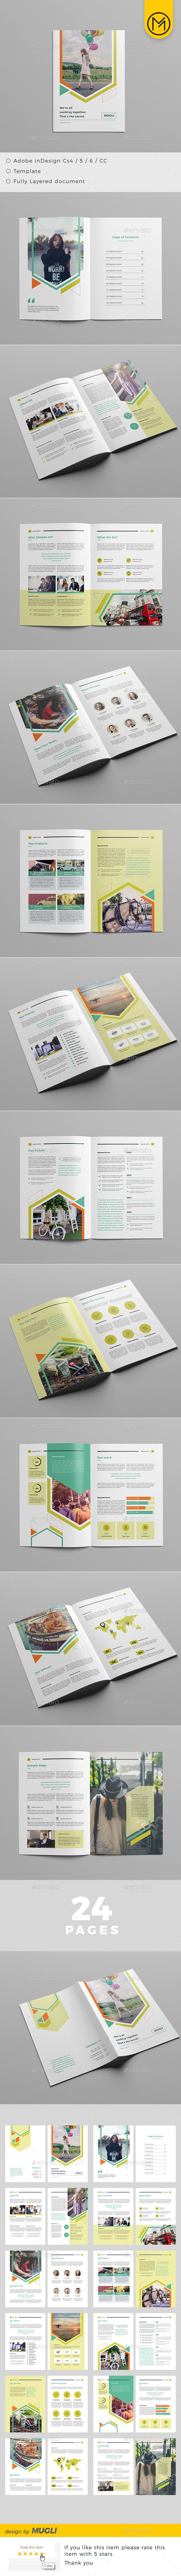 Brochure Template InDesign INDD - 24 Pages